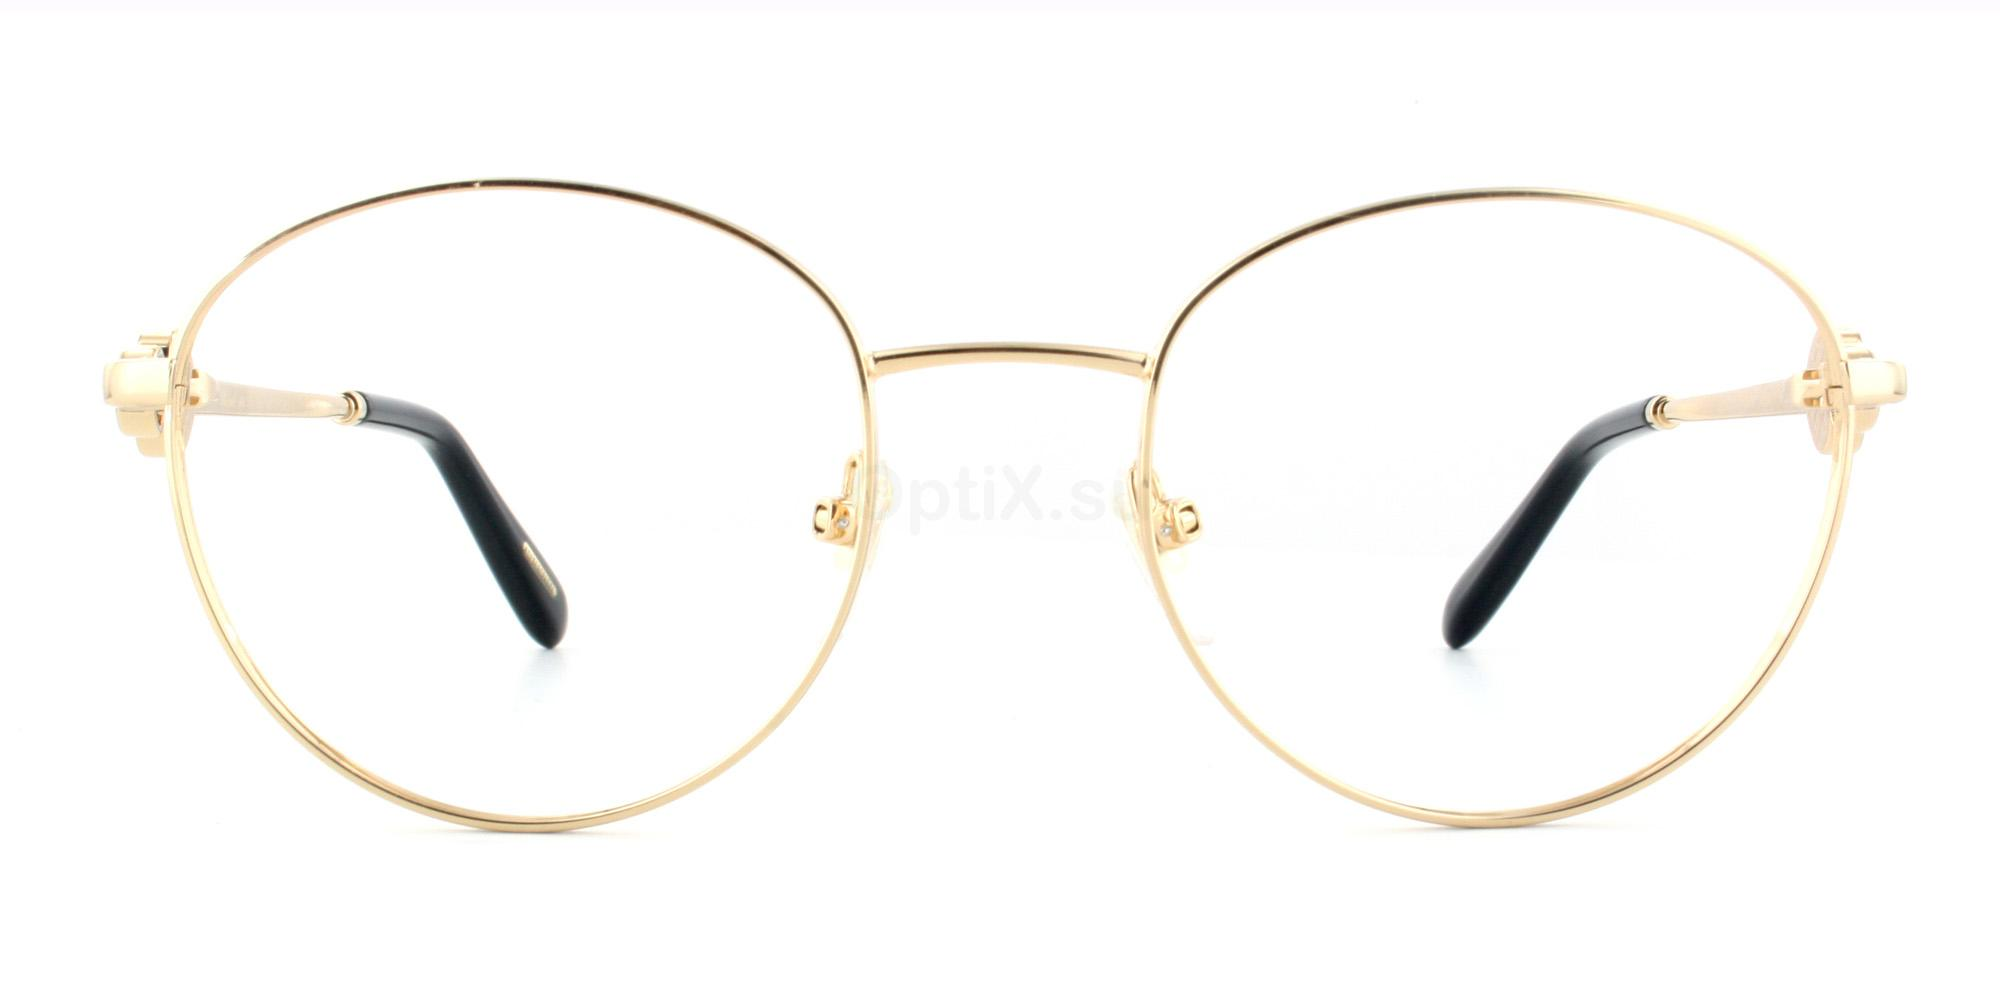 0300 VCHC52S Glasses, Chopard